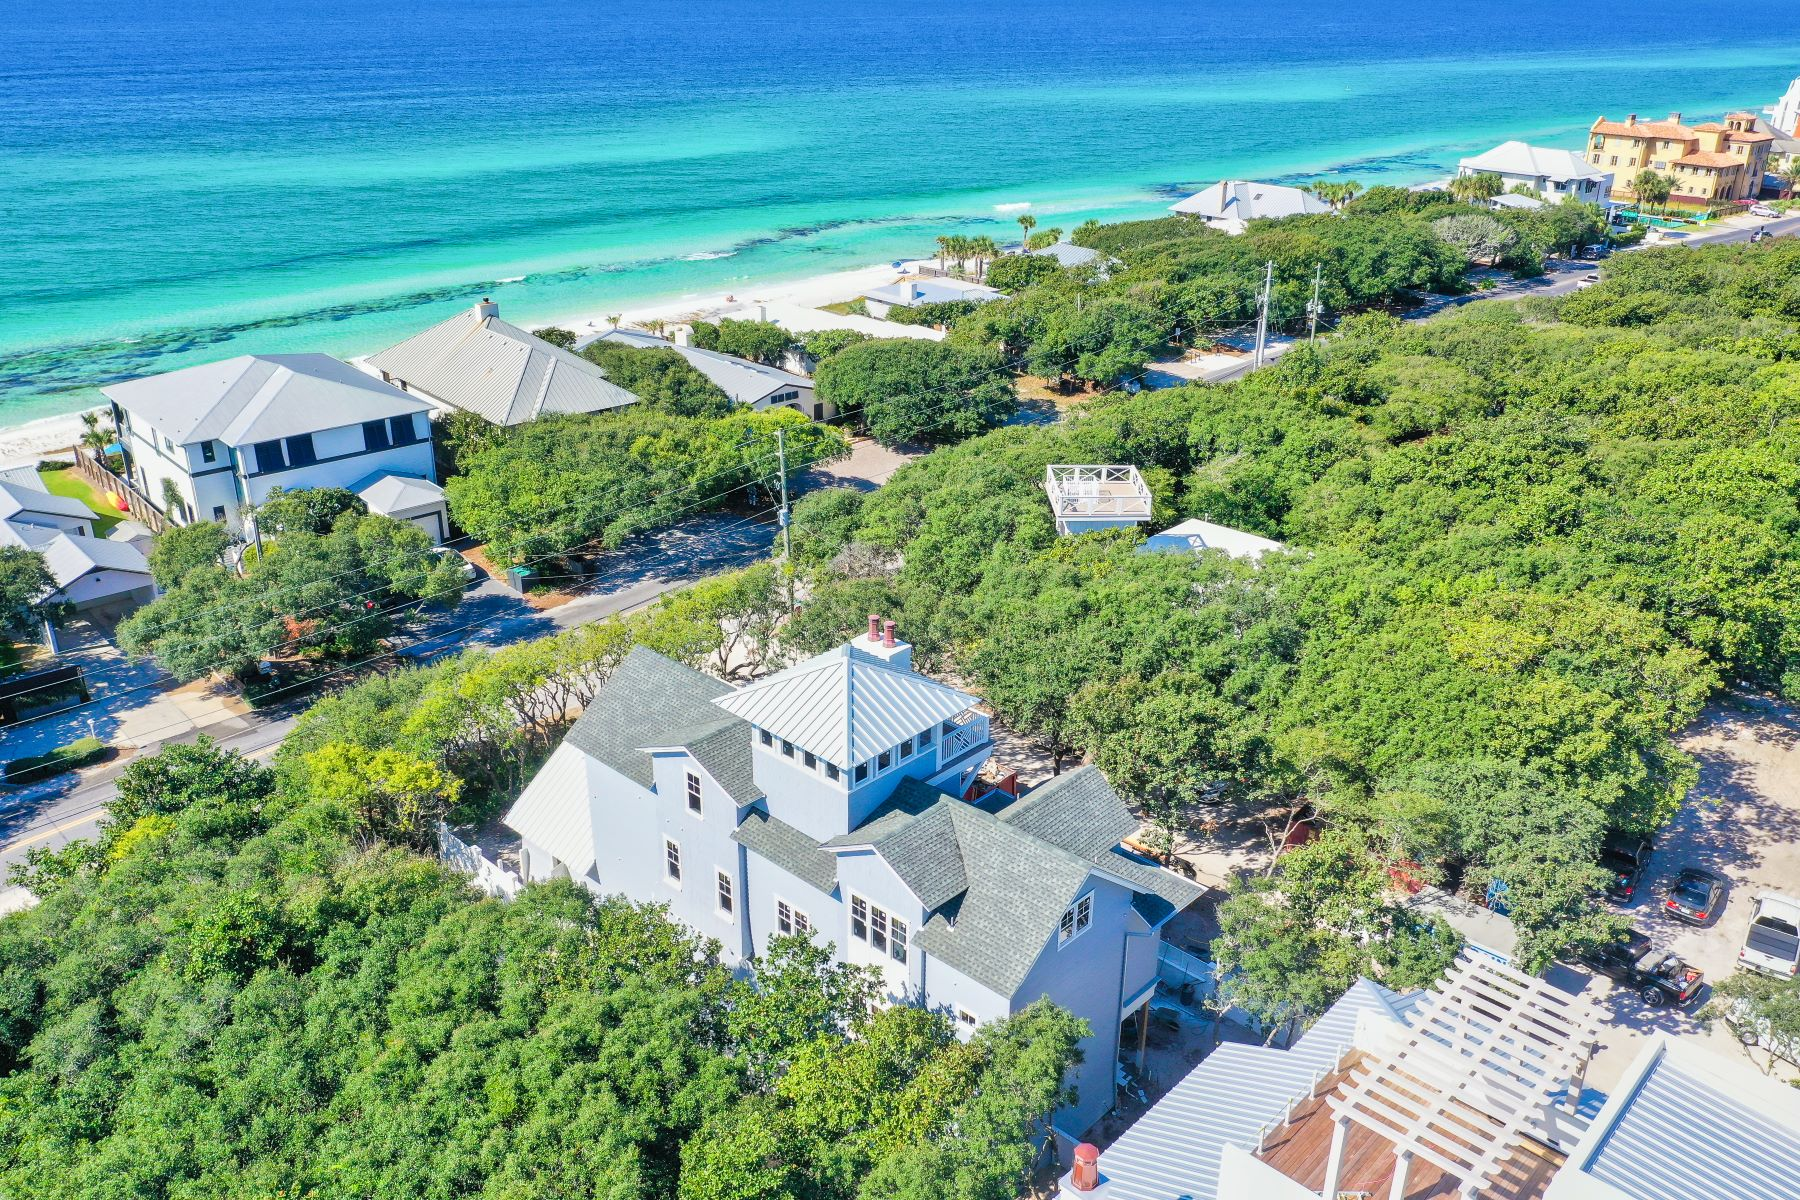 Single Family Homes for Sale at Grand New House a Block to the Beach with Gulf Views 2907 East County Highway 30A, Santa Rosa Beach, Florida 32459 United States